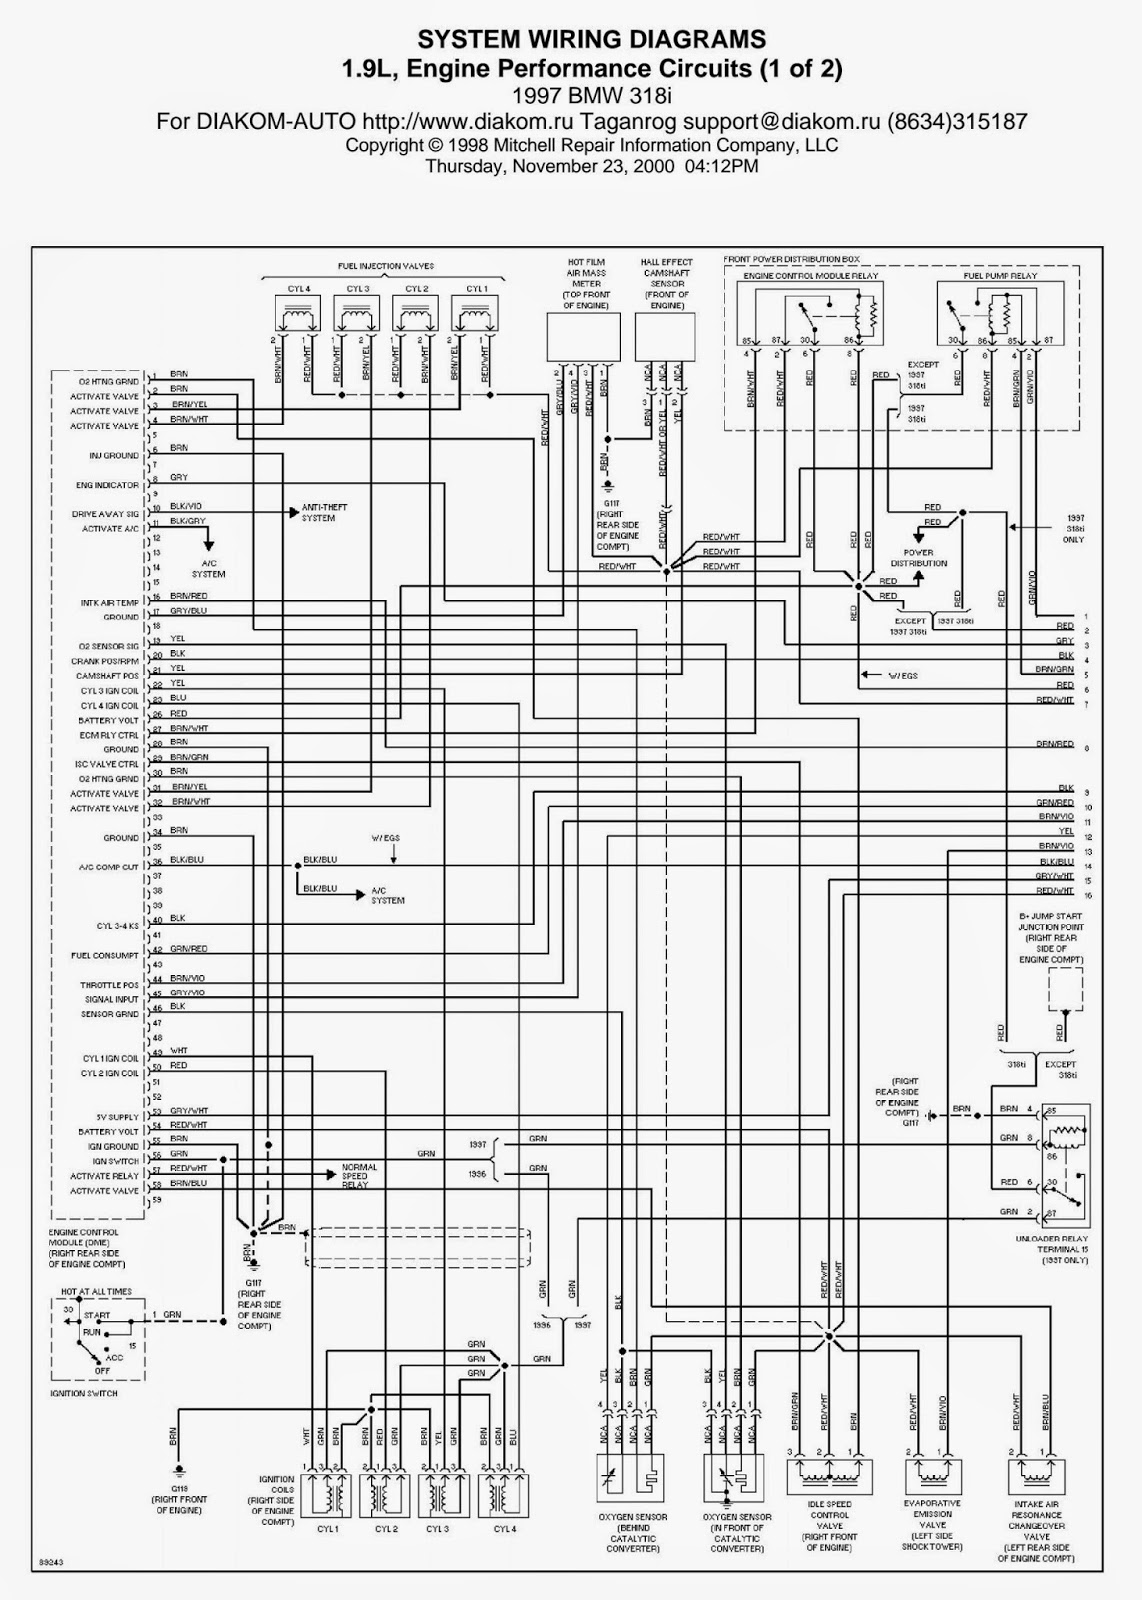 1984 bmw 318i radio wiring diagram 1984 bmw 318i engine diagram 1984 bmw wiring diagrams - wiring images